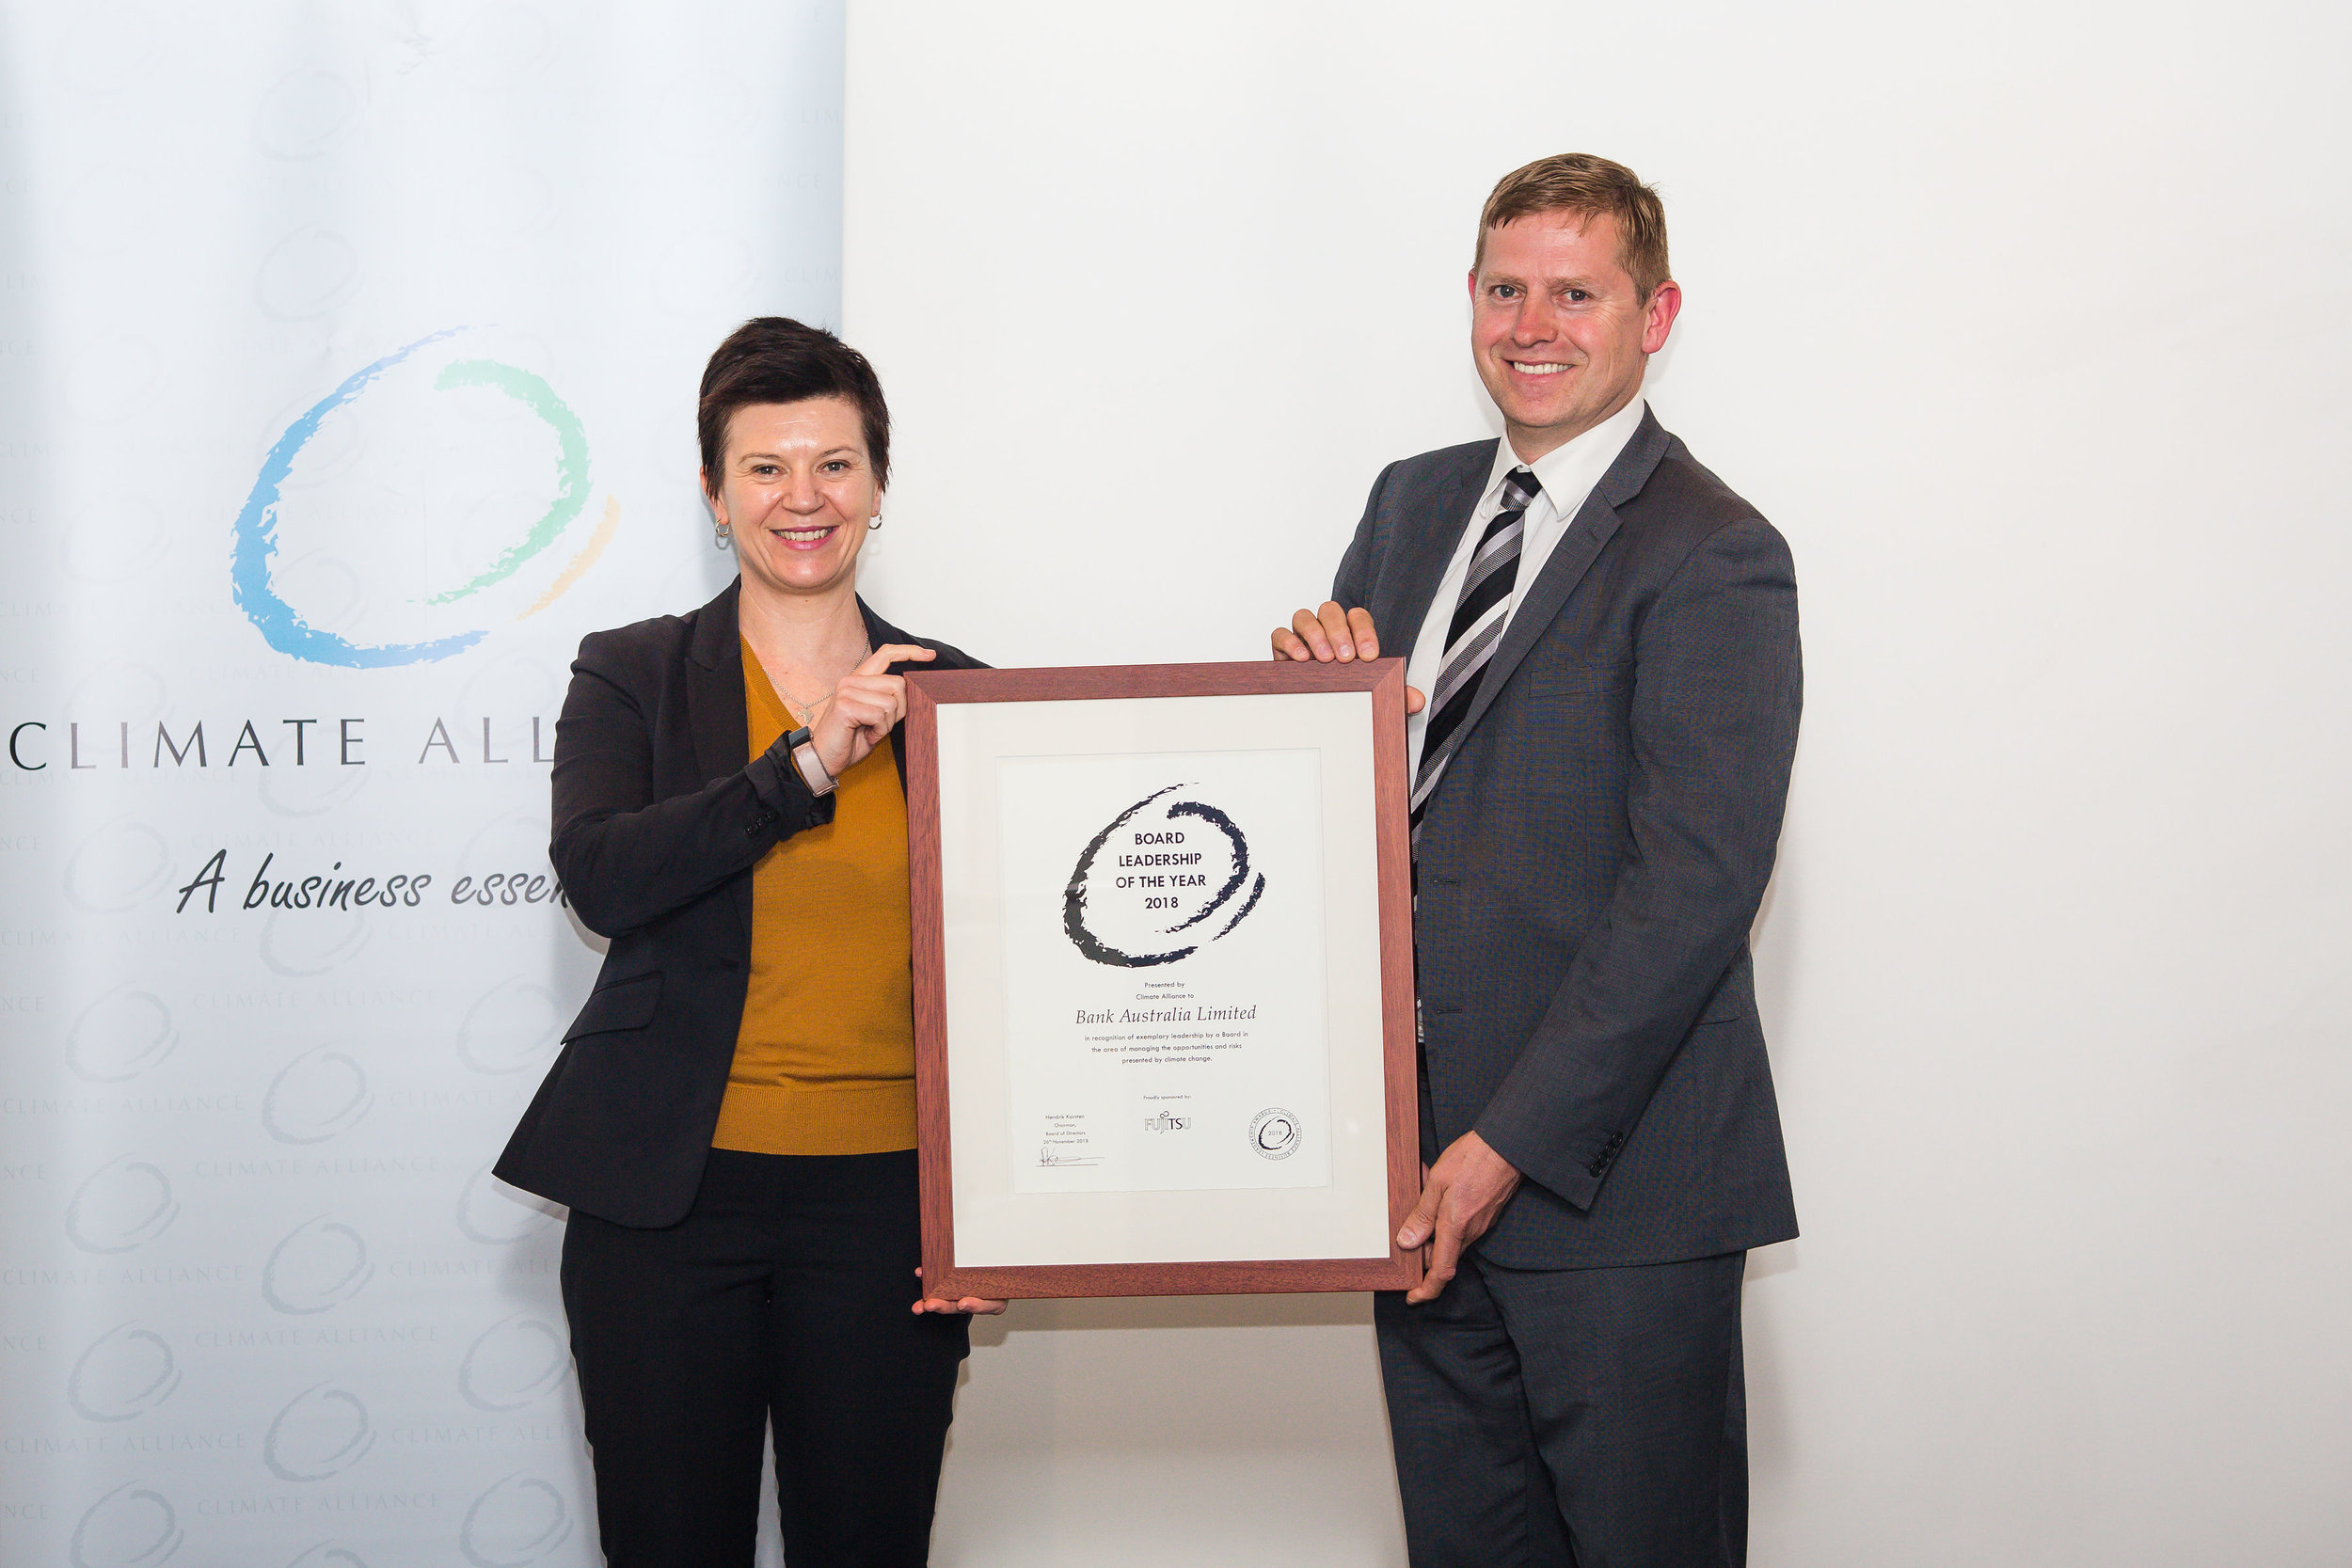 Board Leadership of the Year 2018 - Bank Australia, represented by Fiona Nixon, Head of Corporate Affairs with Turlough Guerin, Chairman of the Climate Alliance Board of Advisors.